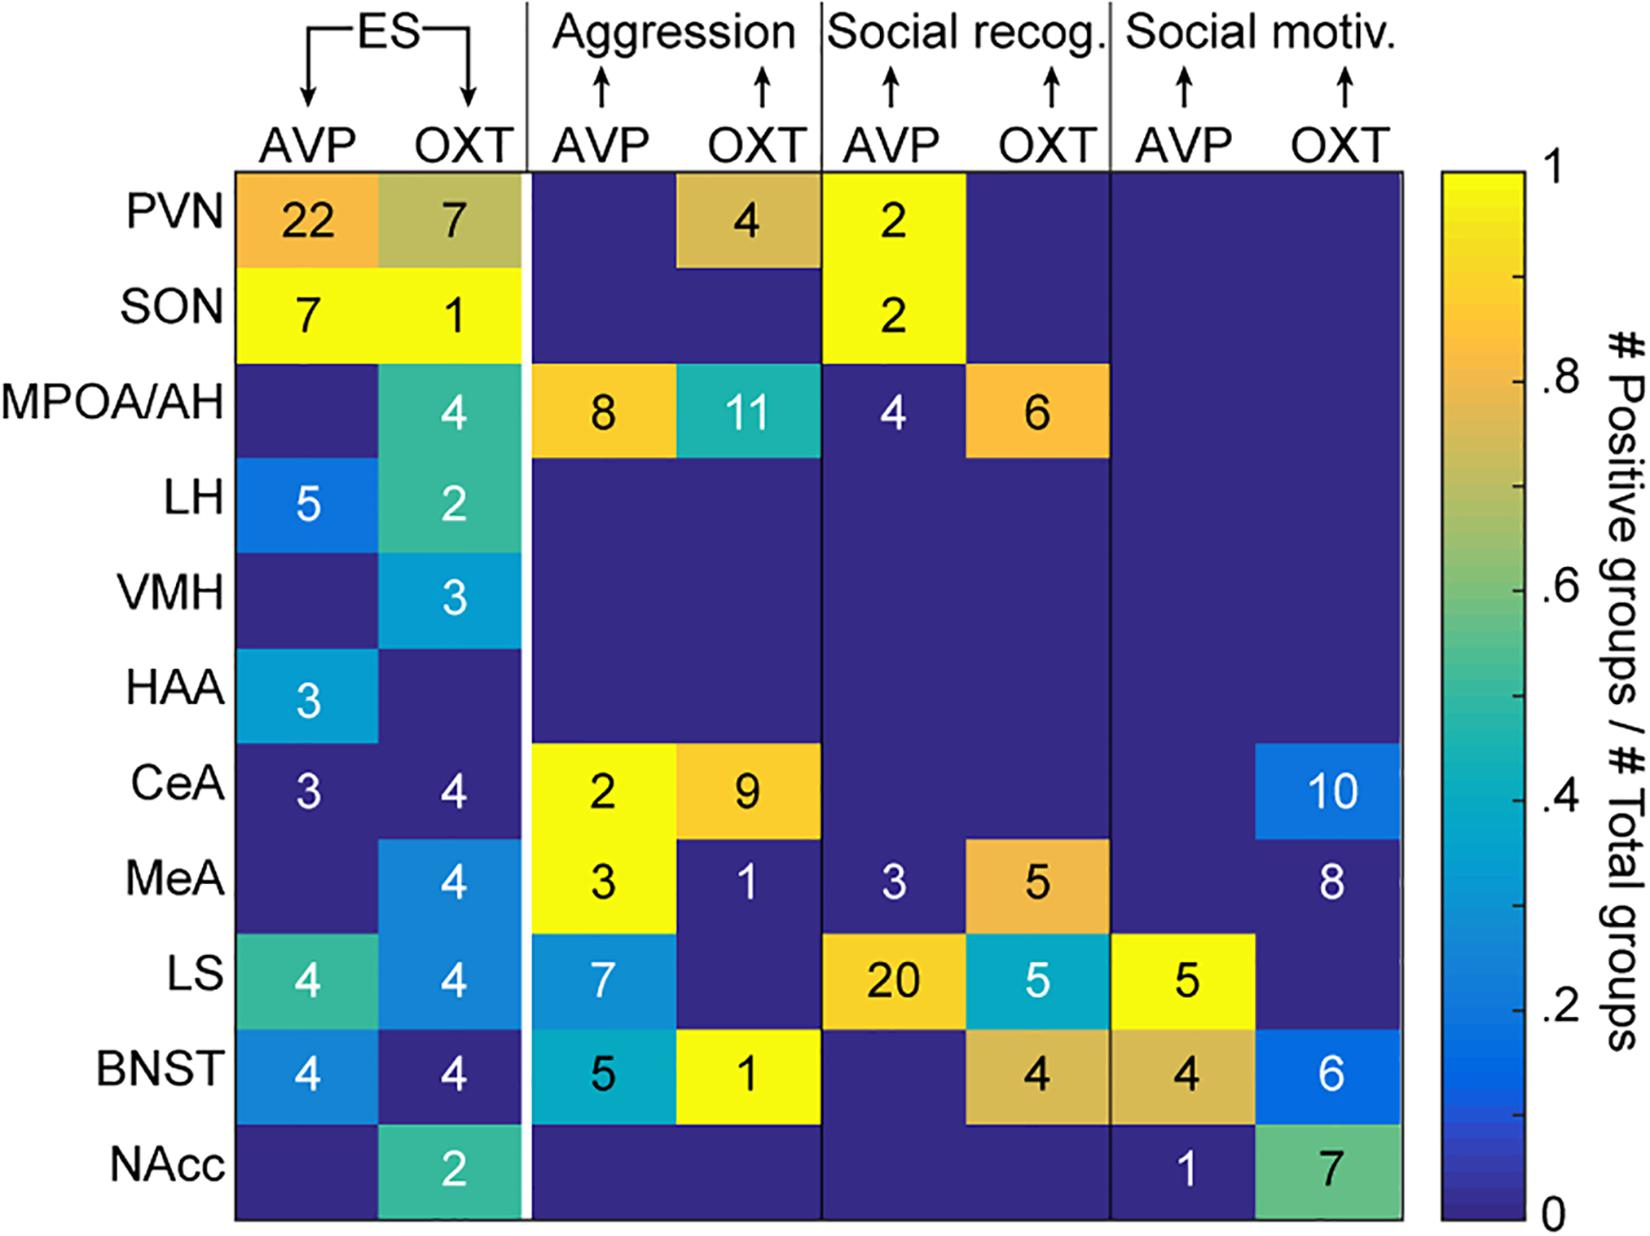 Frontiers | Early Life Adversity and Adult Social Behavior: Focus on